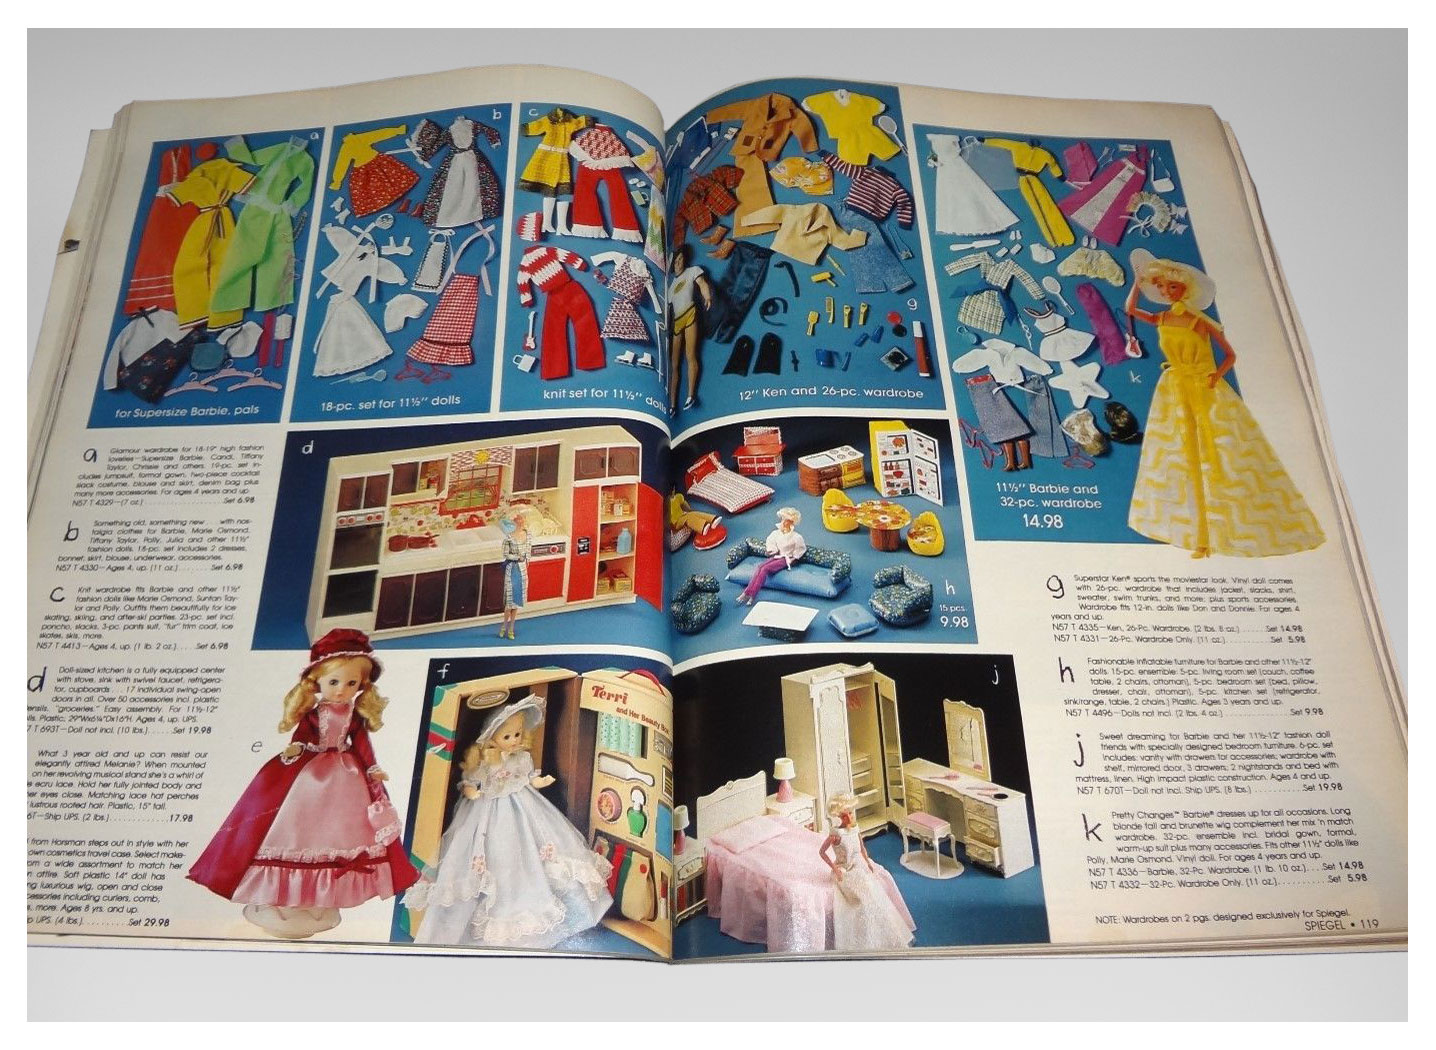 From 1980 Spiegel Christmas catalogue